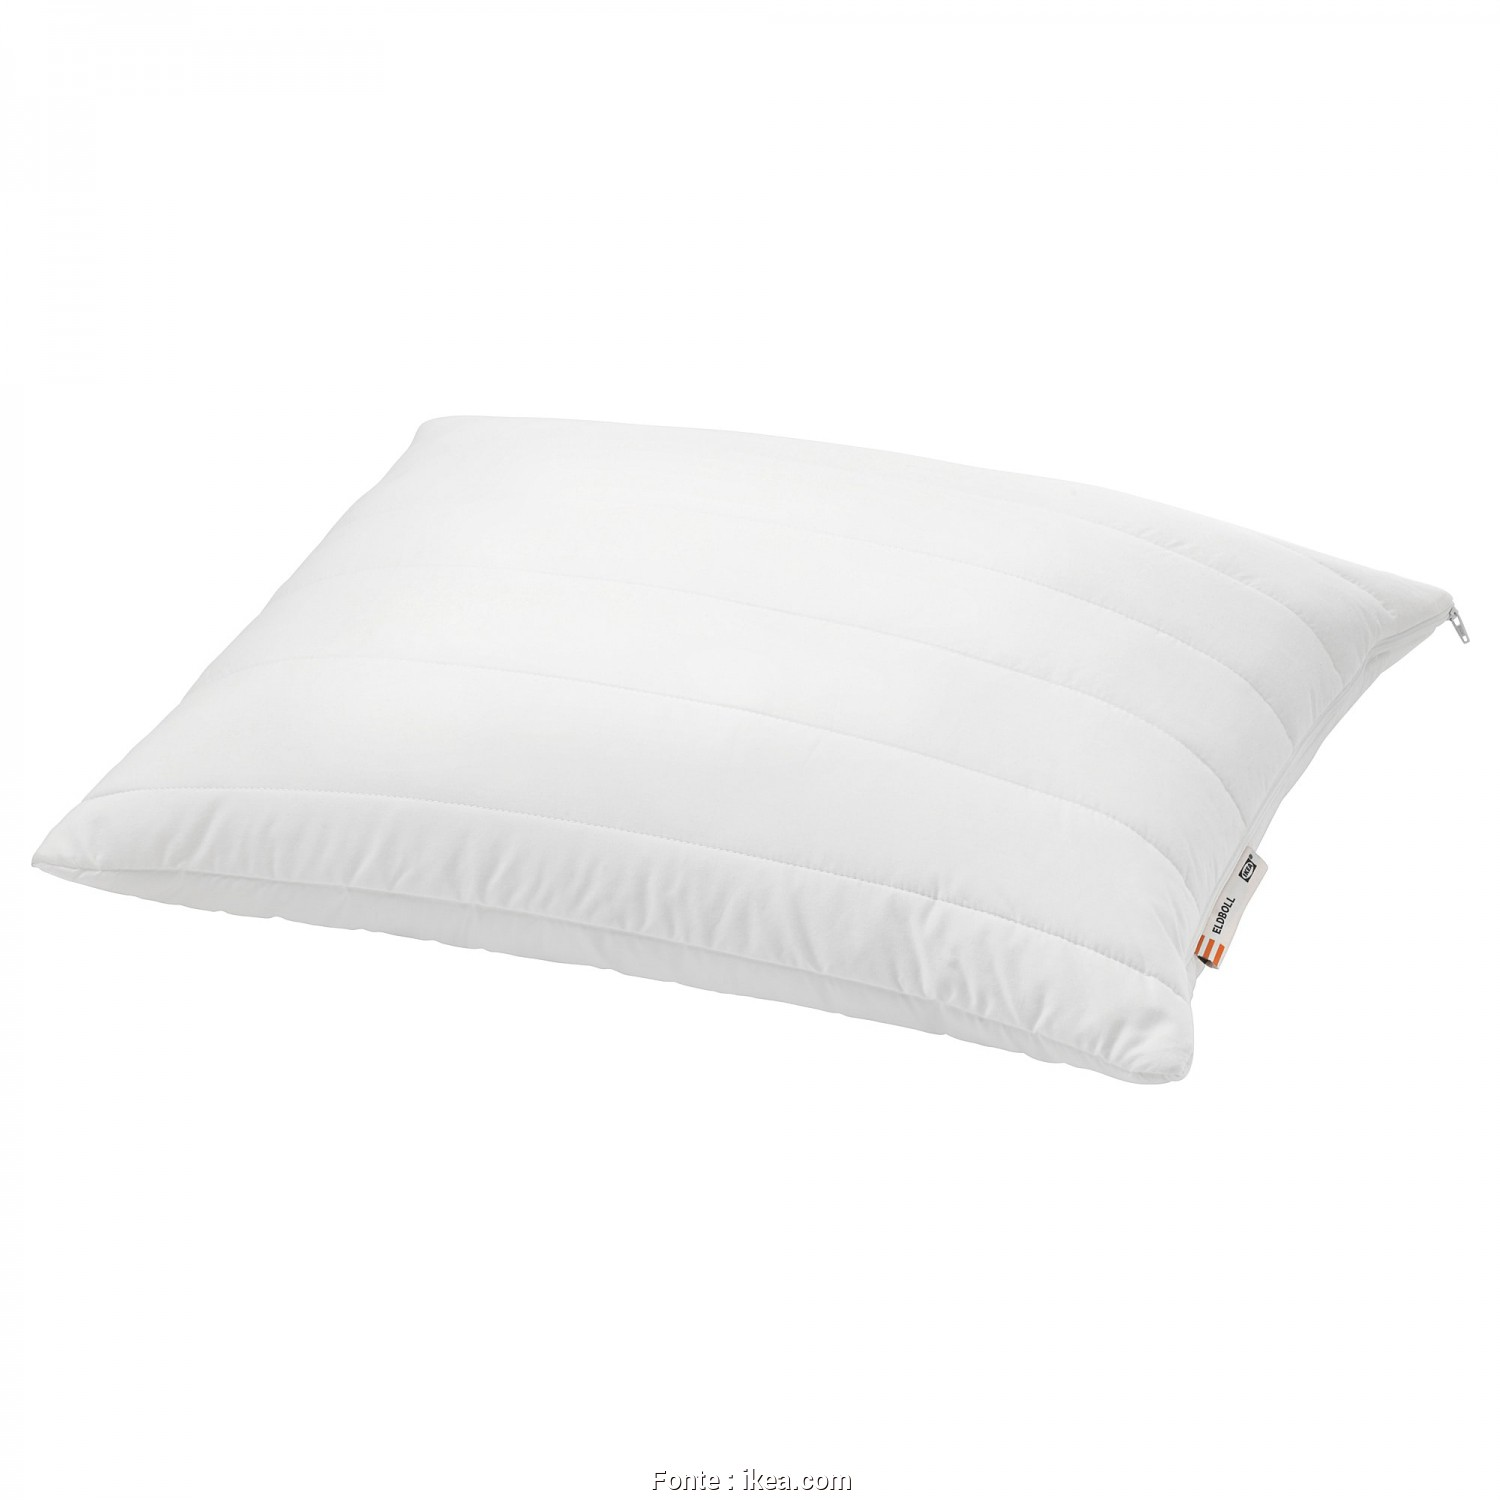 Cuscino Memory Foam Ikea, Esotico IKEA ELDBOLL Memory Foam/Polyester Pillow Choose This Pillow If, Are A Back Or